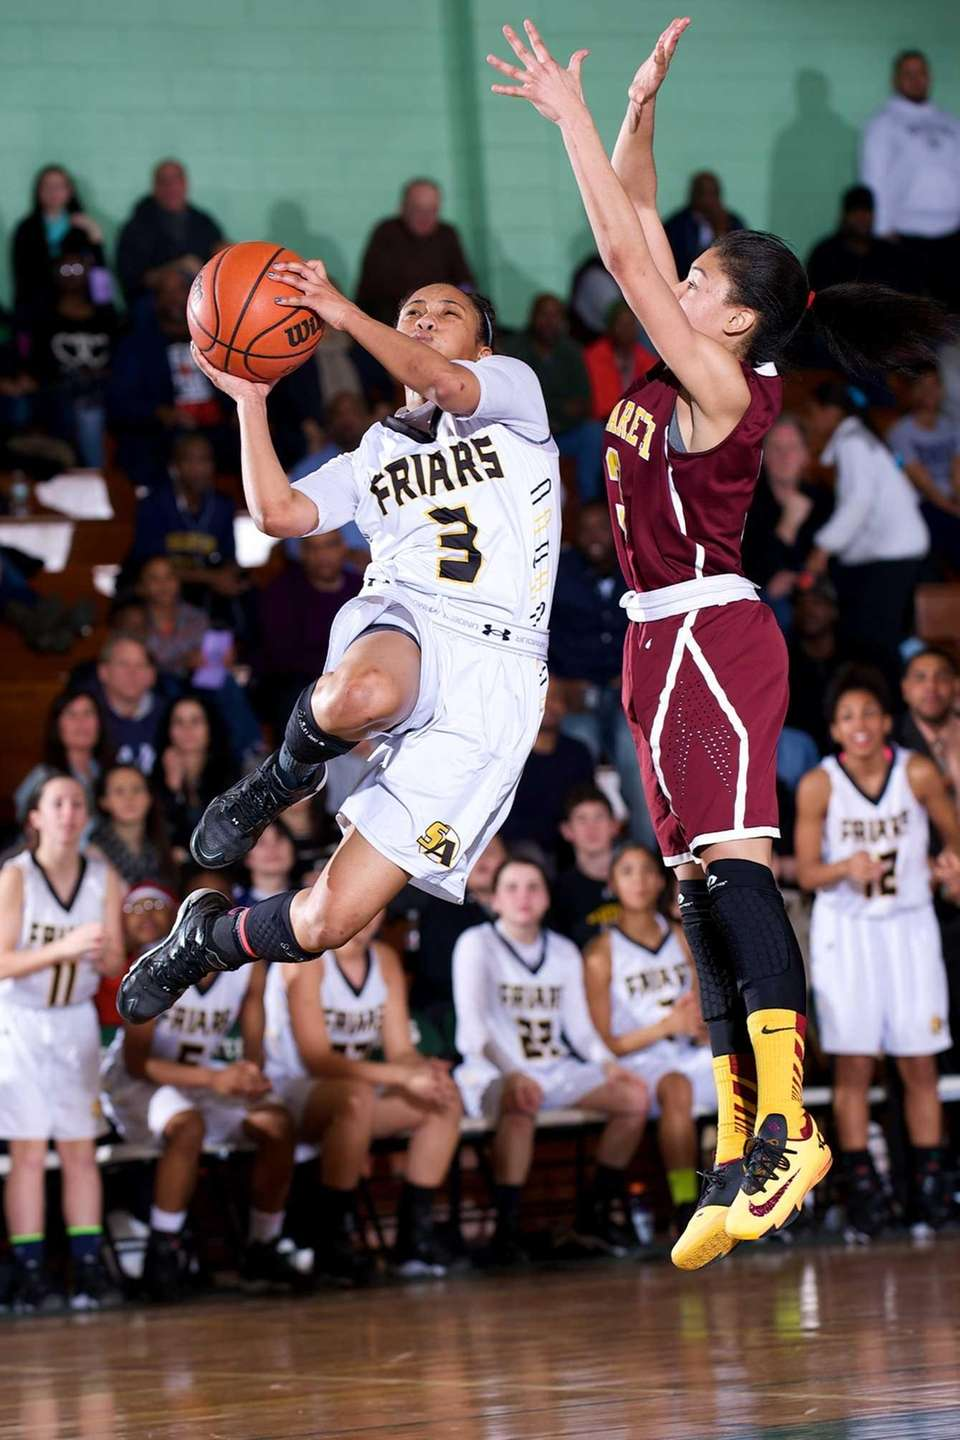 St. Anthony's guard Charise Wilson puts up a